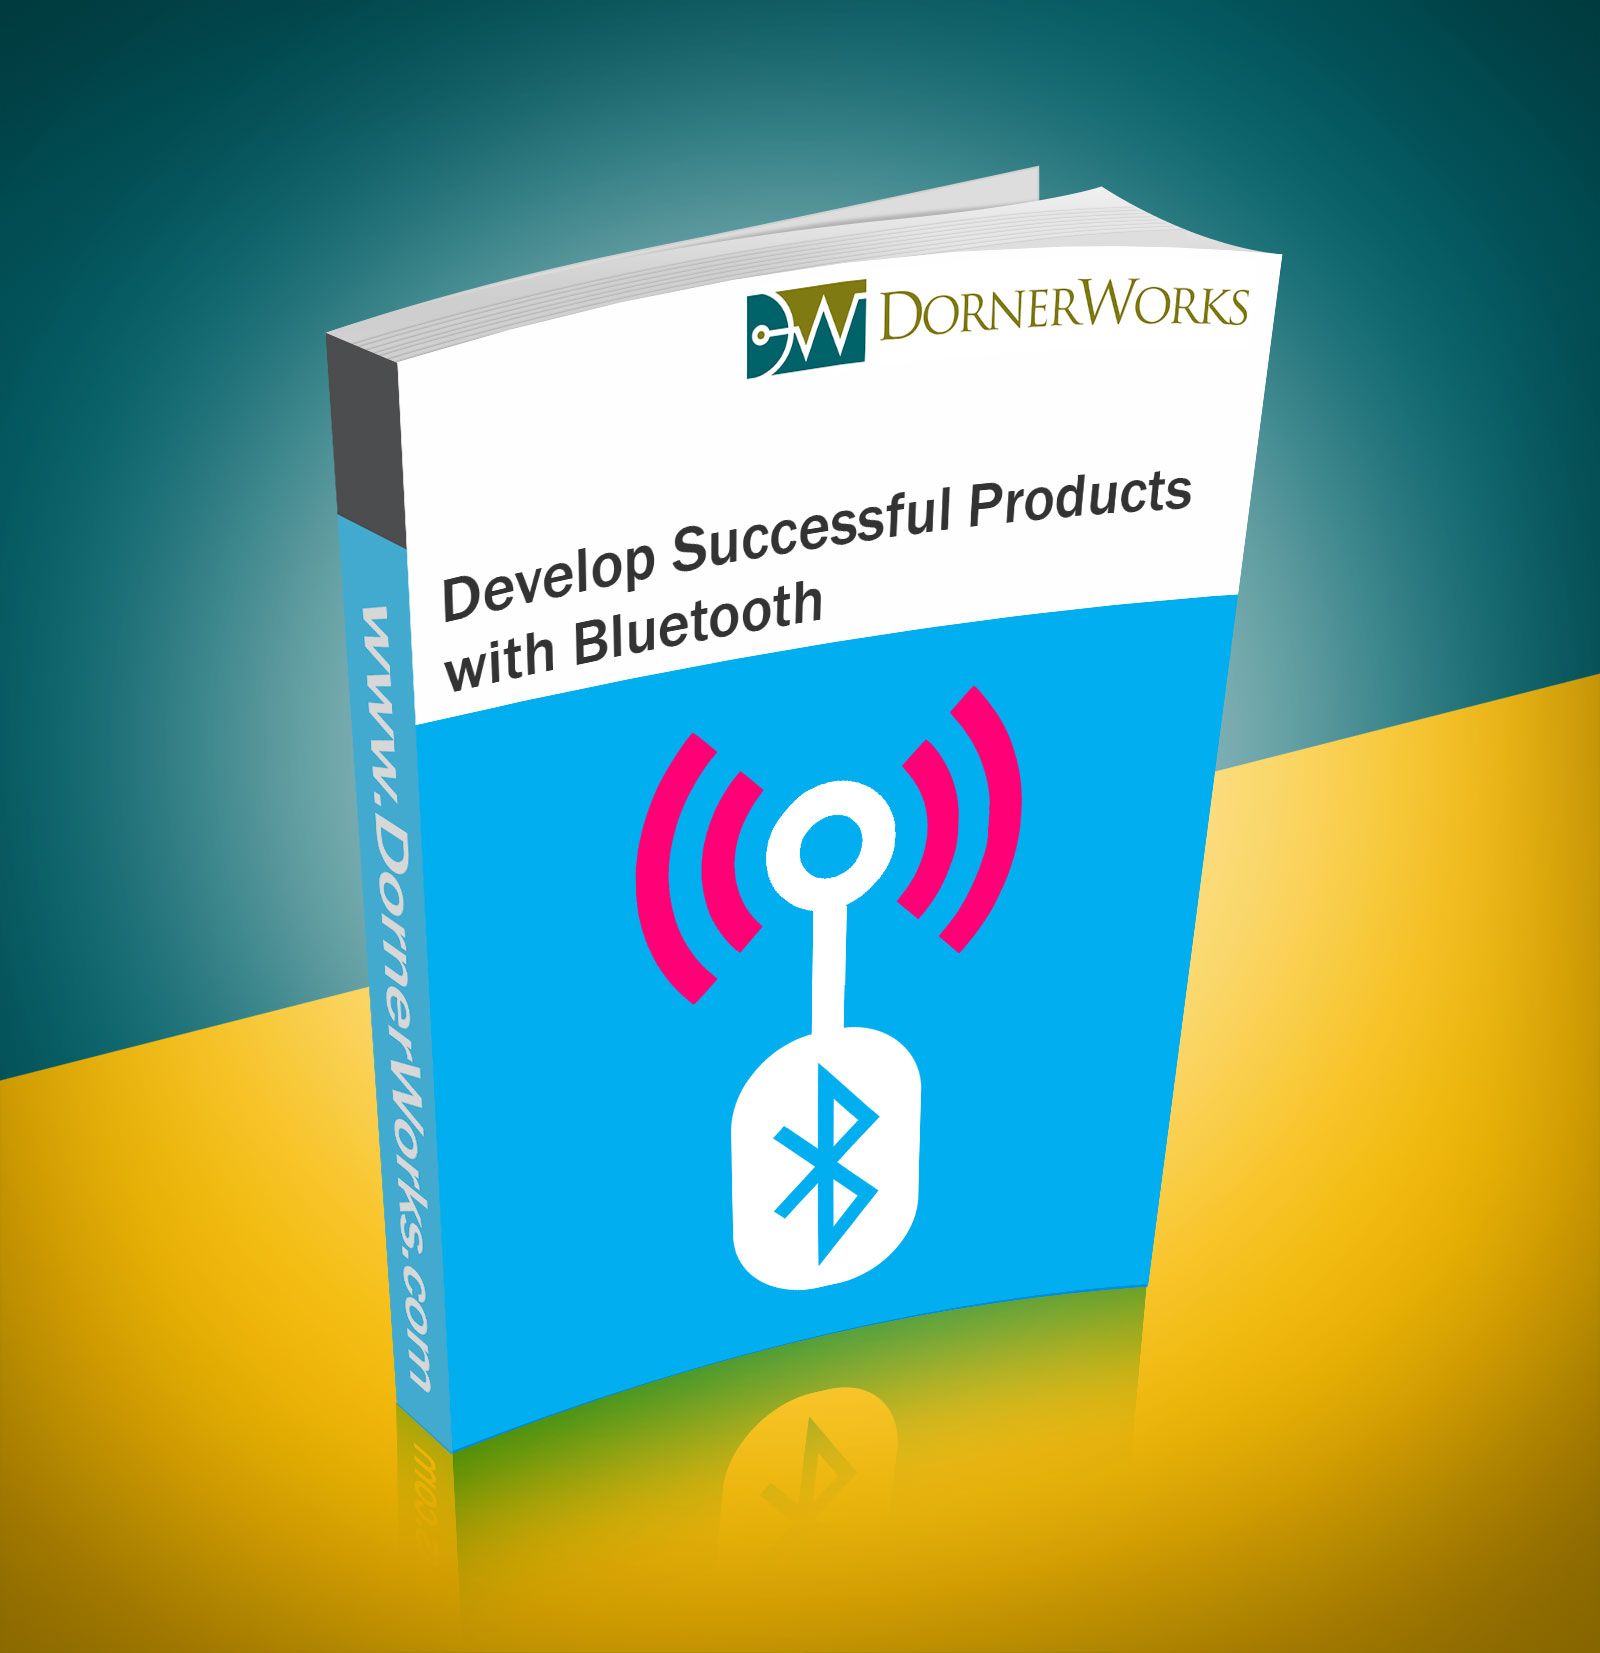 Develop Successful Products with Bluetooth